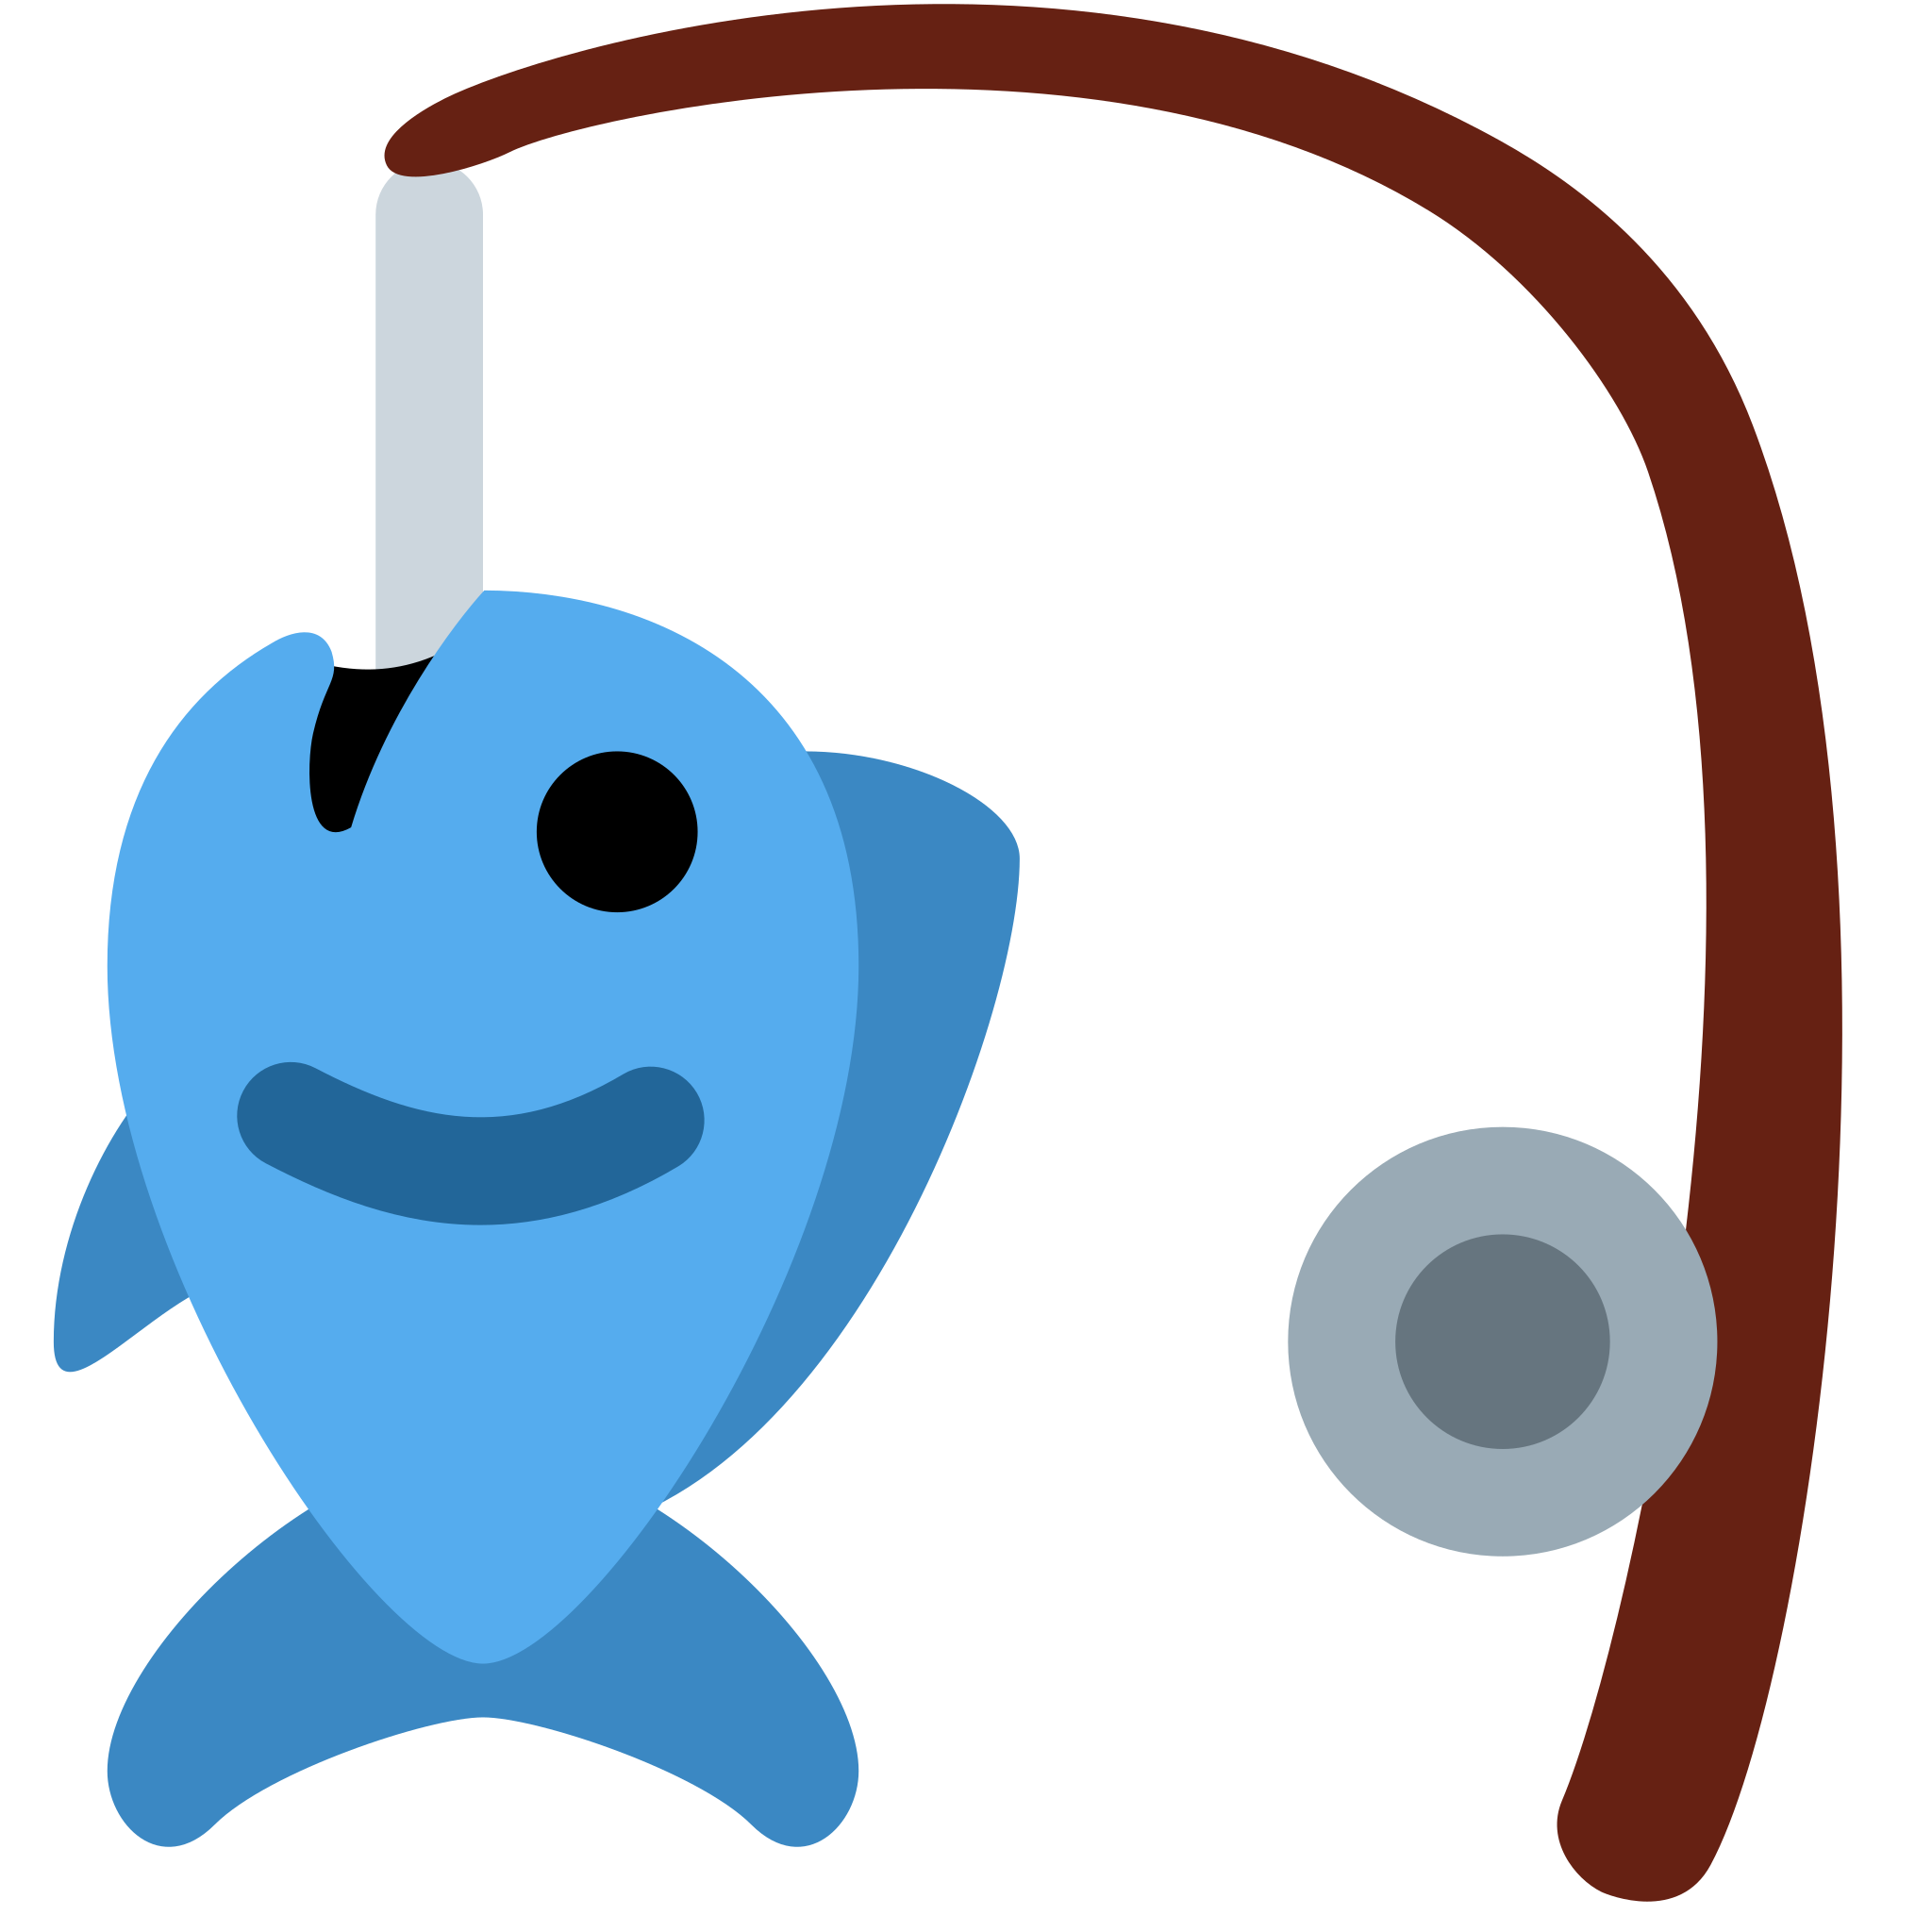 Fishing pole and fish clipart clip art free Fishing Pole With Fish – localbrush.info clip art free